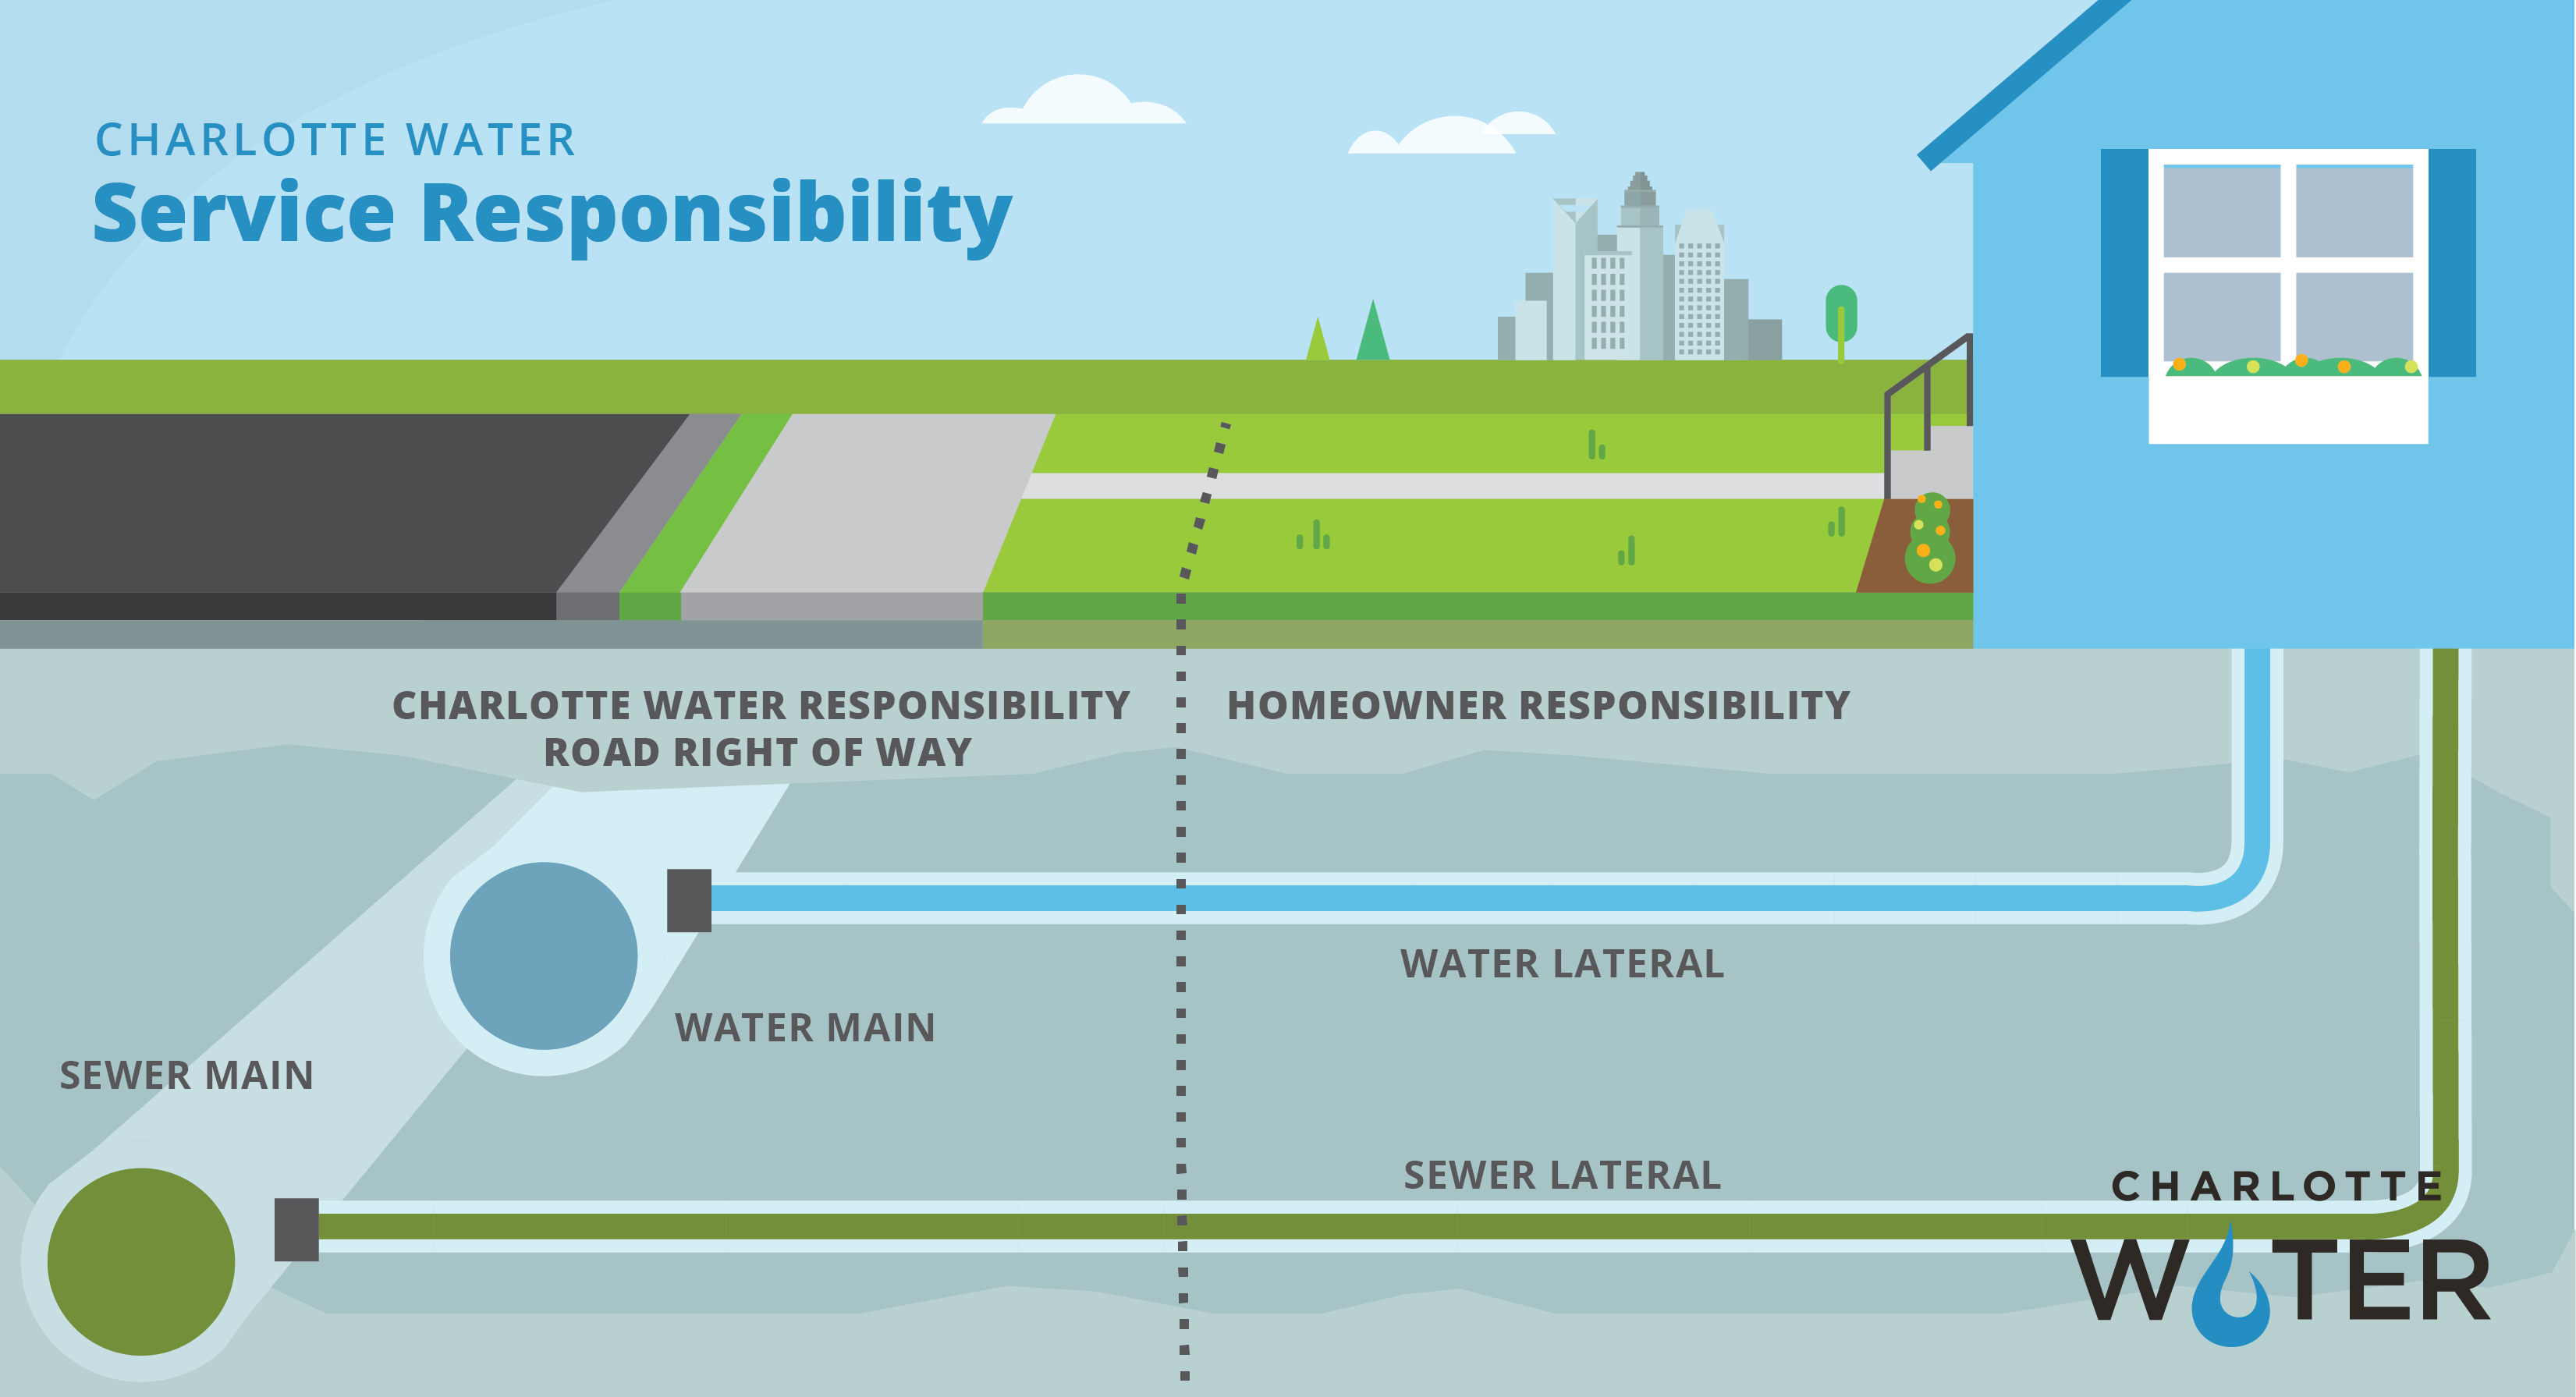 Charlotte Water Service Responsibility